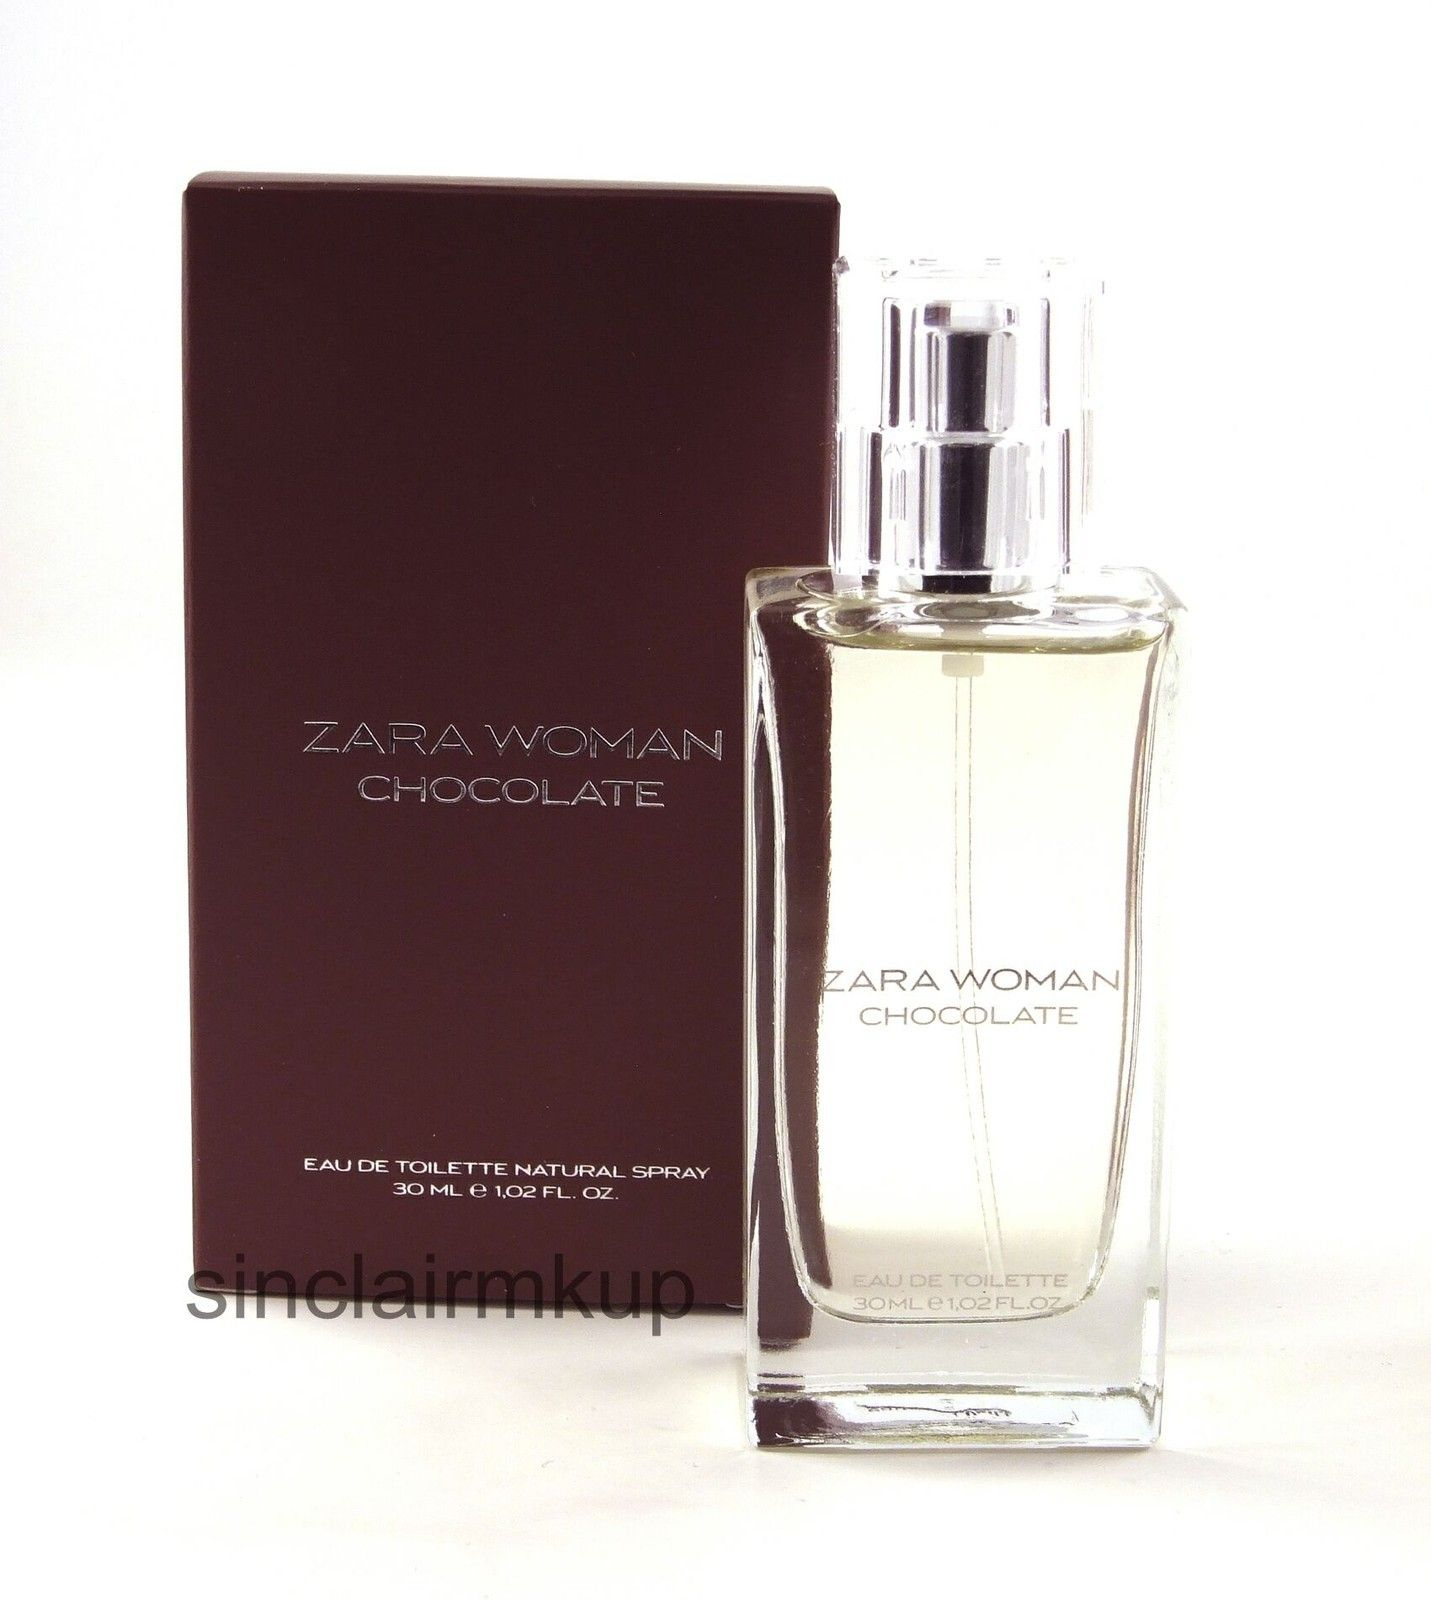 Zara Chocolate Perfume 60kn Wish List Pinterest Perfume